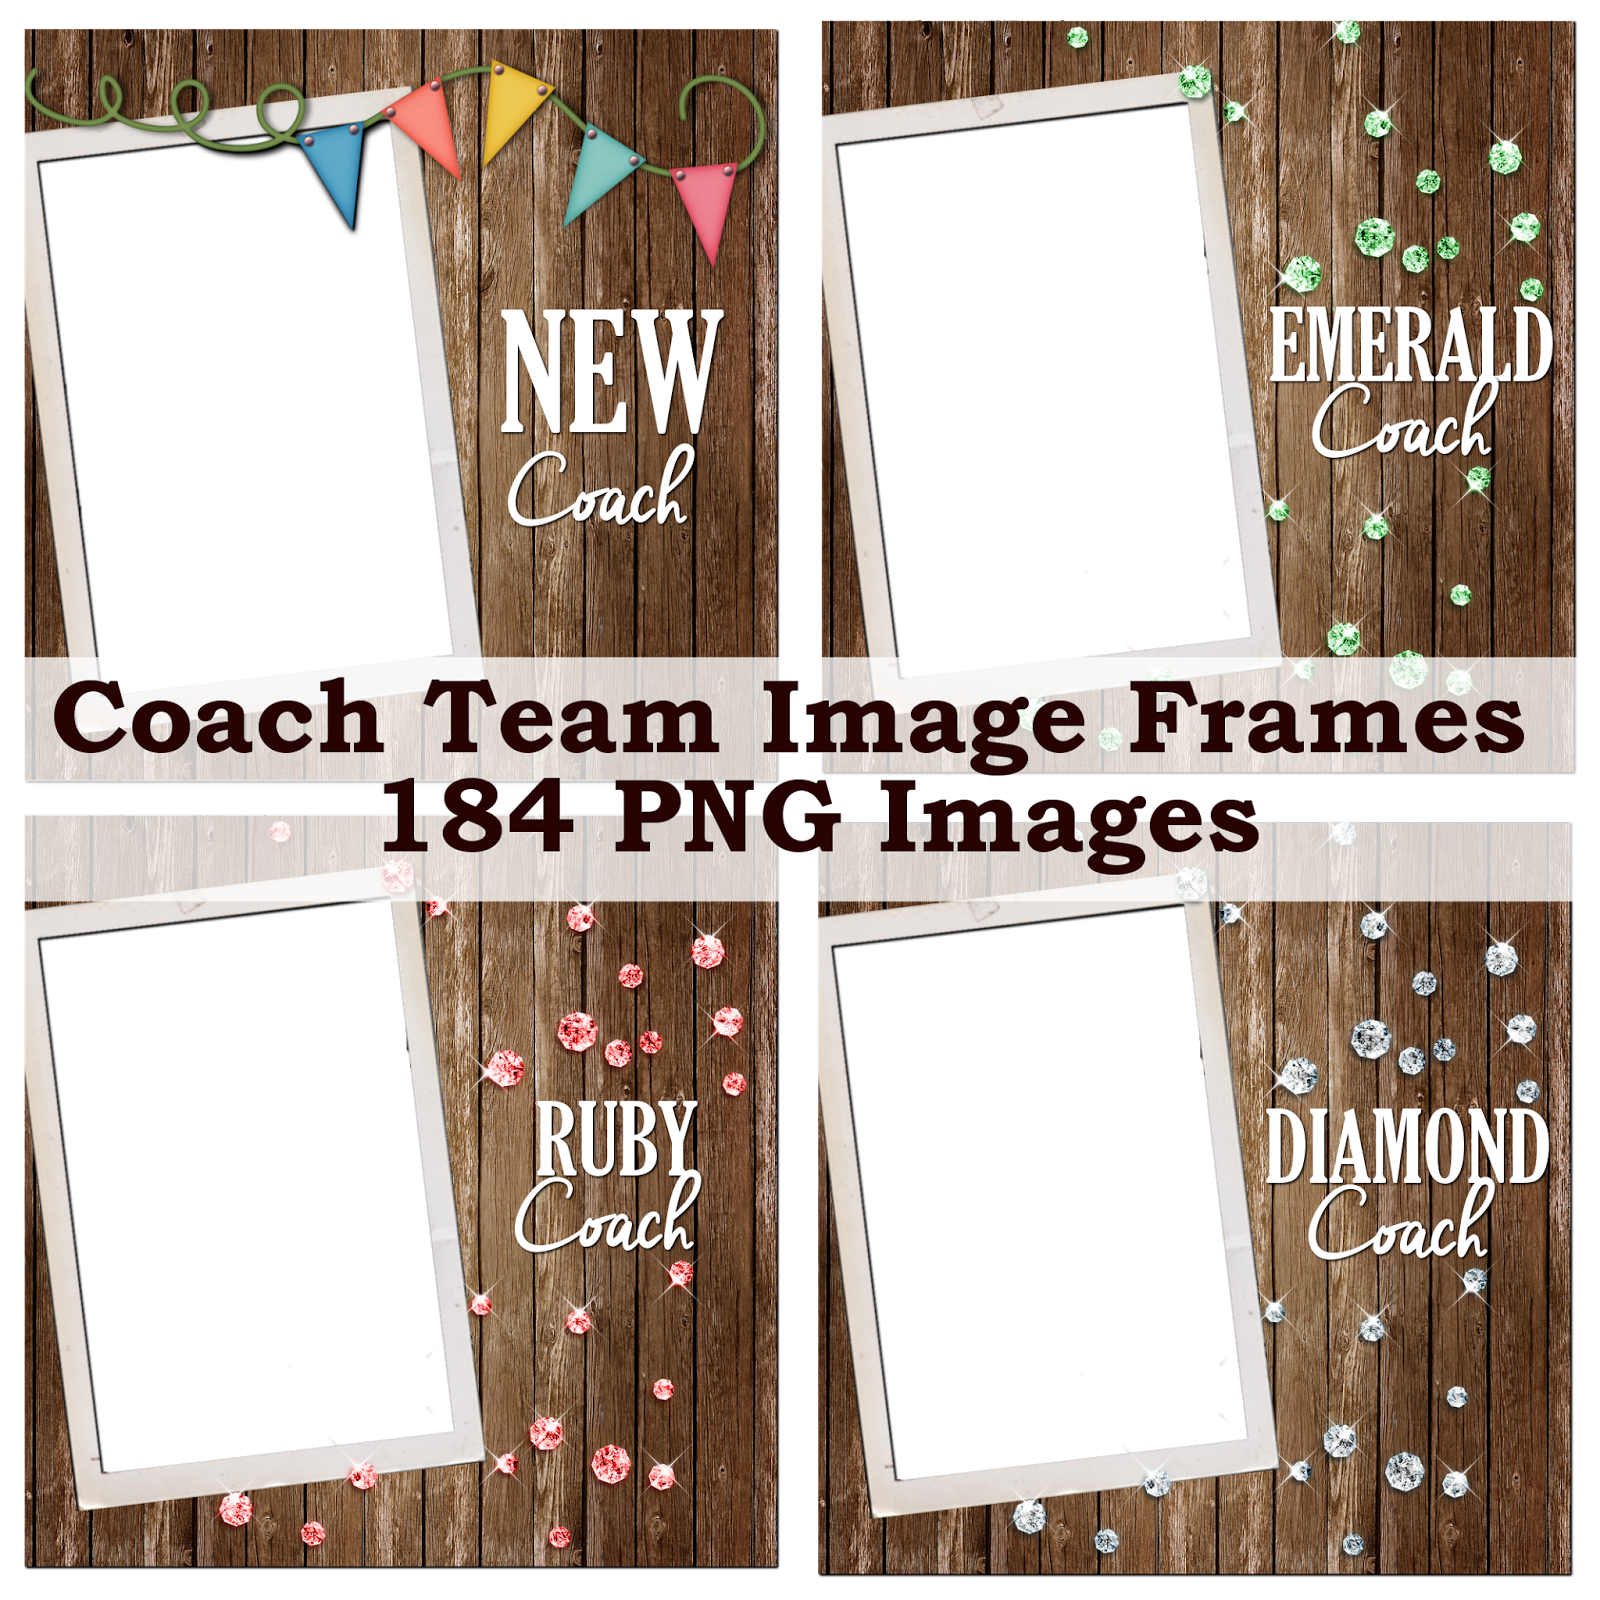 Coach Image Frames To Use In Your Business Welcome New